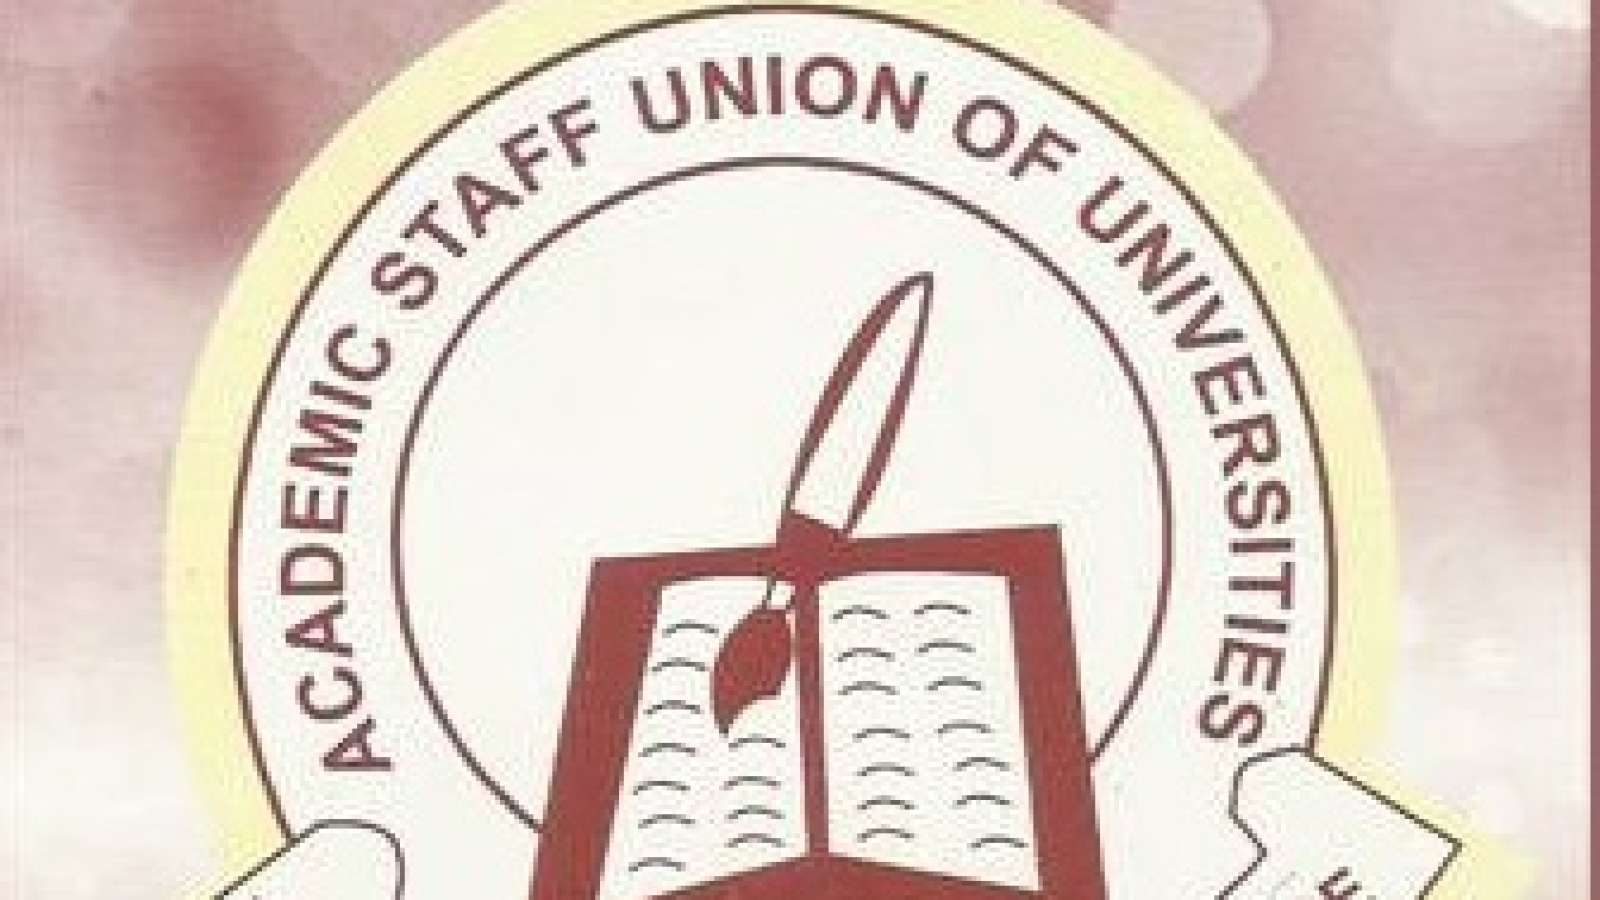 But for Tragedy, Founding Fathers Planned Every Nigerian University to Be World Class